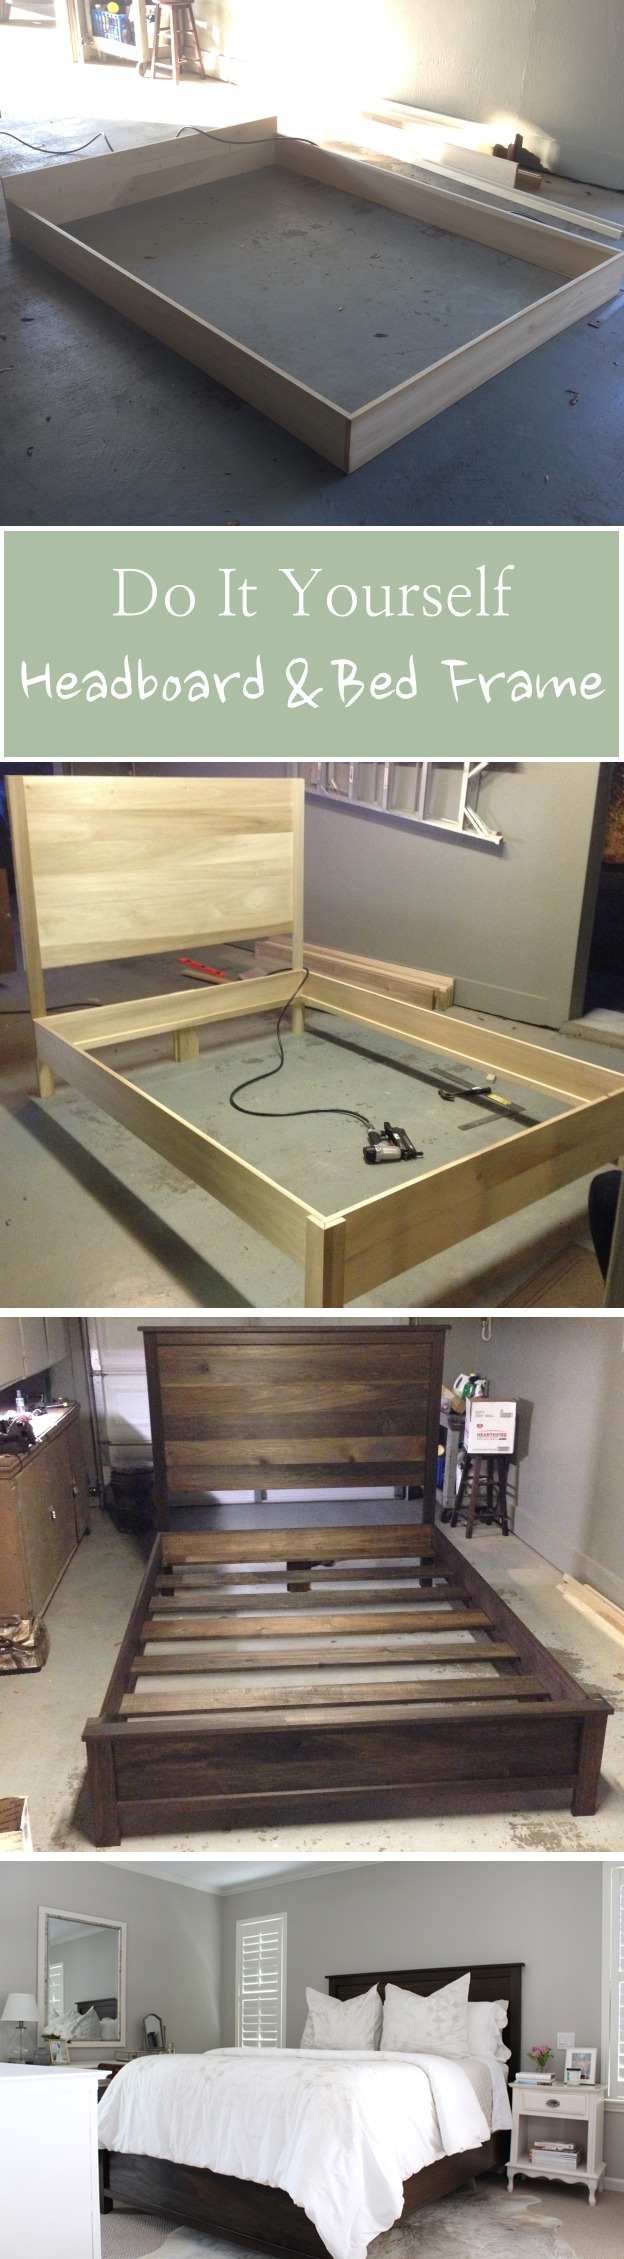 25 easy diy bed frame projects to upgrade your bedroom homelovr diy headboard bed frame solutioingenieria